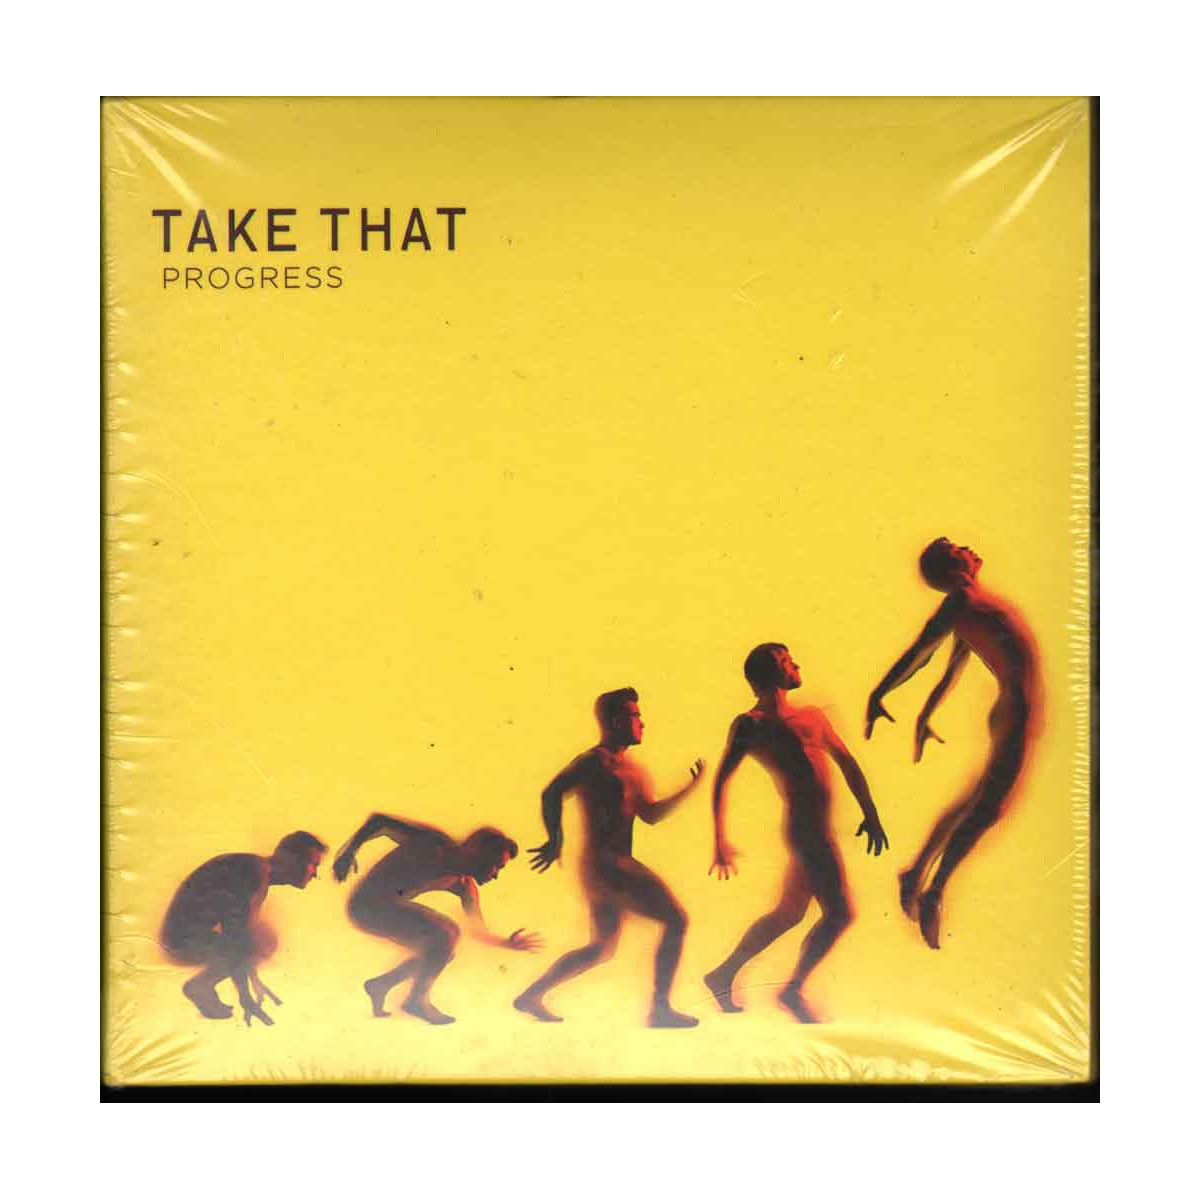 Take That CD Progress - Deluxe Edition Nuovo Sigillato 0602527559278